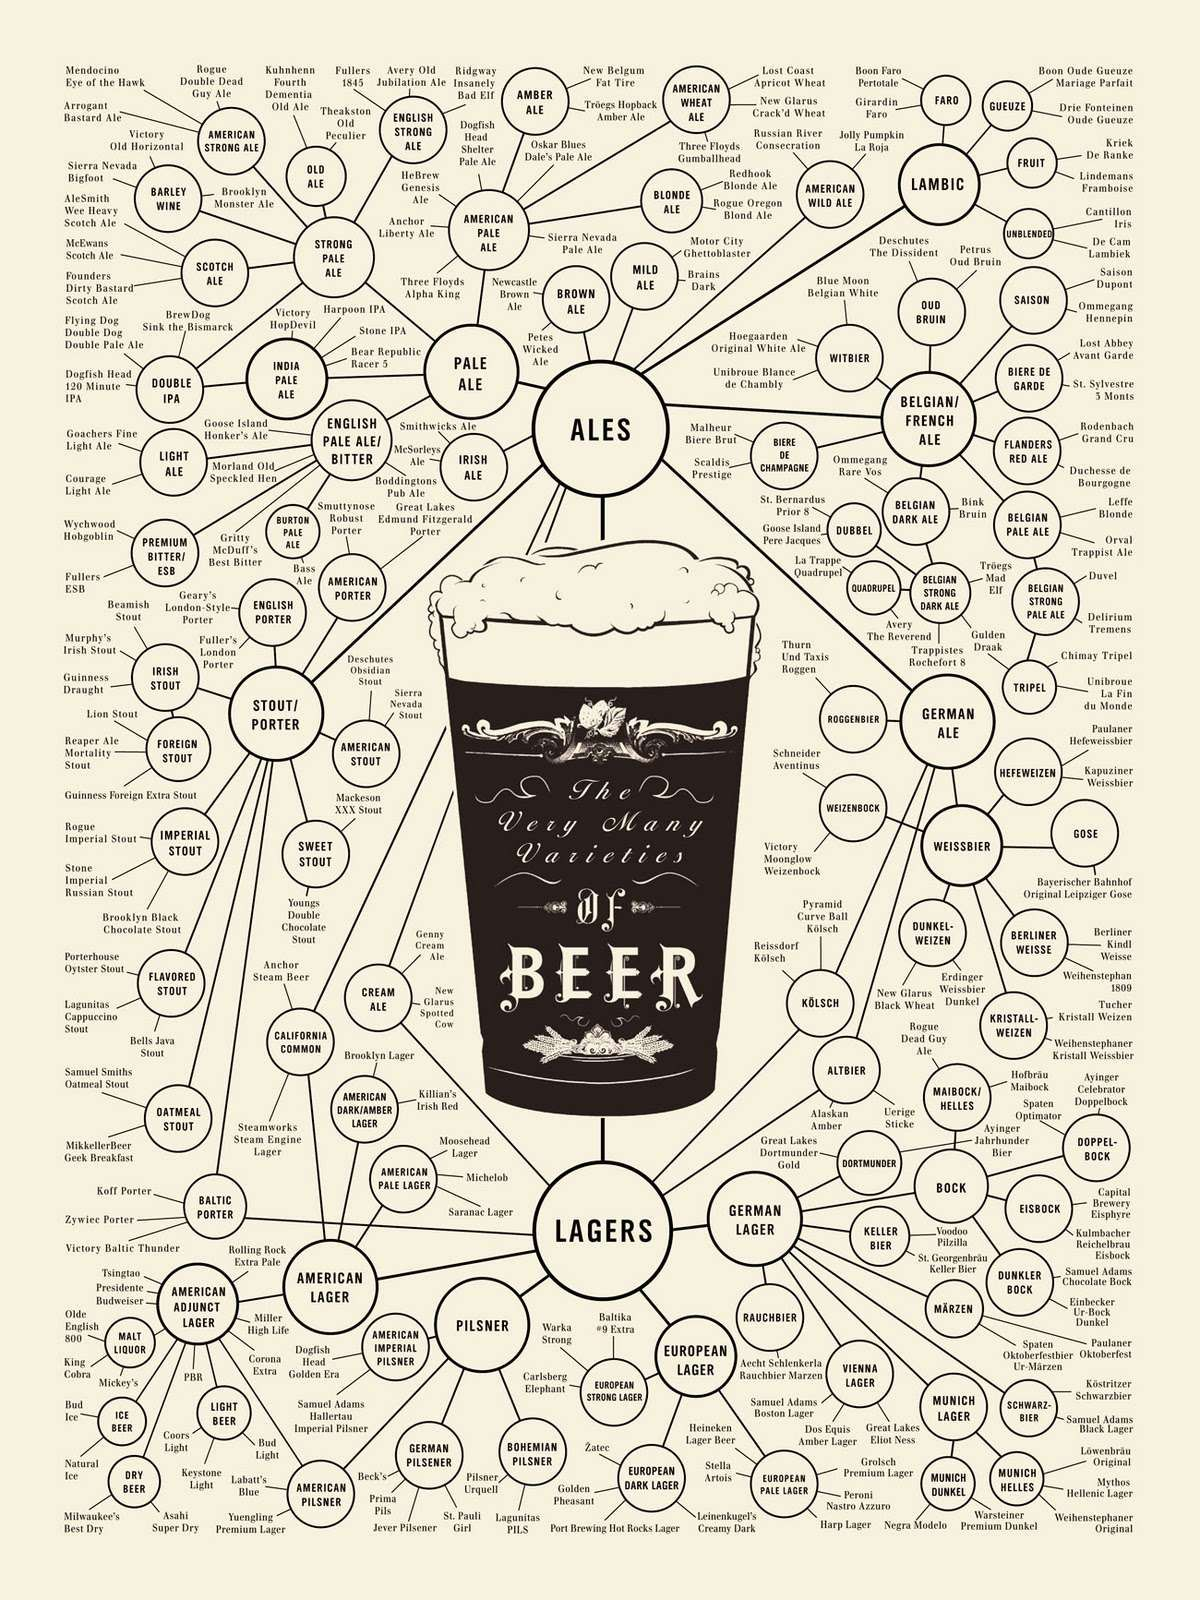 the world of beer-love this!